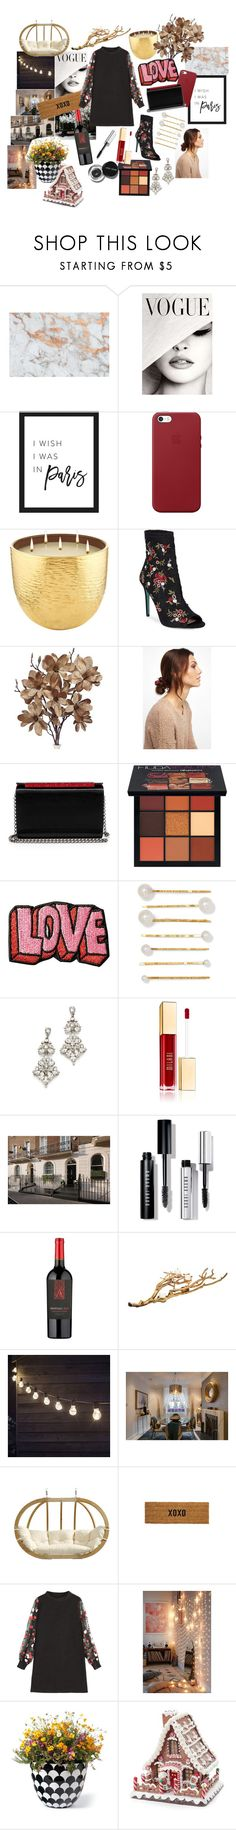 """near the end♦️♥️♣️♠️🃏"" by fashioninmyindustry ❤ liked on Polyvore featuring Apple, AERIN, Betsey Johnson, NOVA, Christian Louboutin, Huda Beauty, Stoney Clover Lane, Jennifer Behr, Ben-Amun and Bobbi Brown Cosmetics"